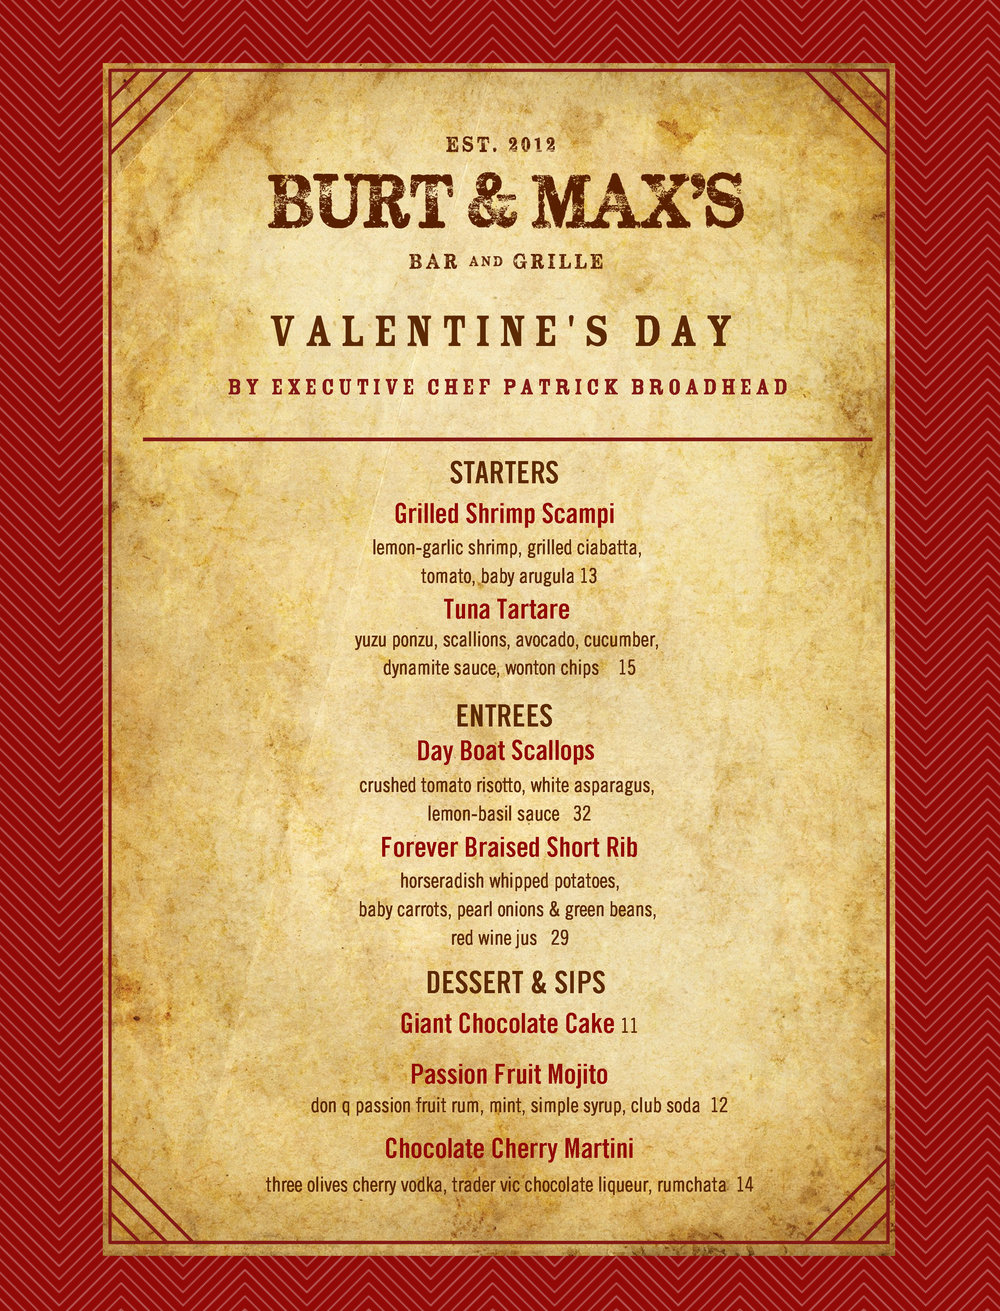 BURT & MAX'S  - Special a la carte menu (in addition to the full regular menu). Valentine's Day specialty cocktails. Click  HERE  for details.